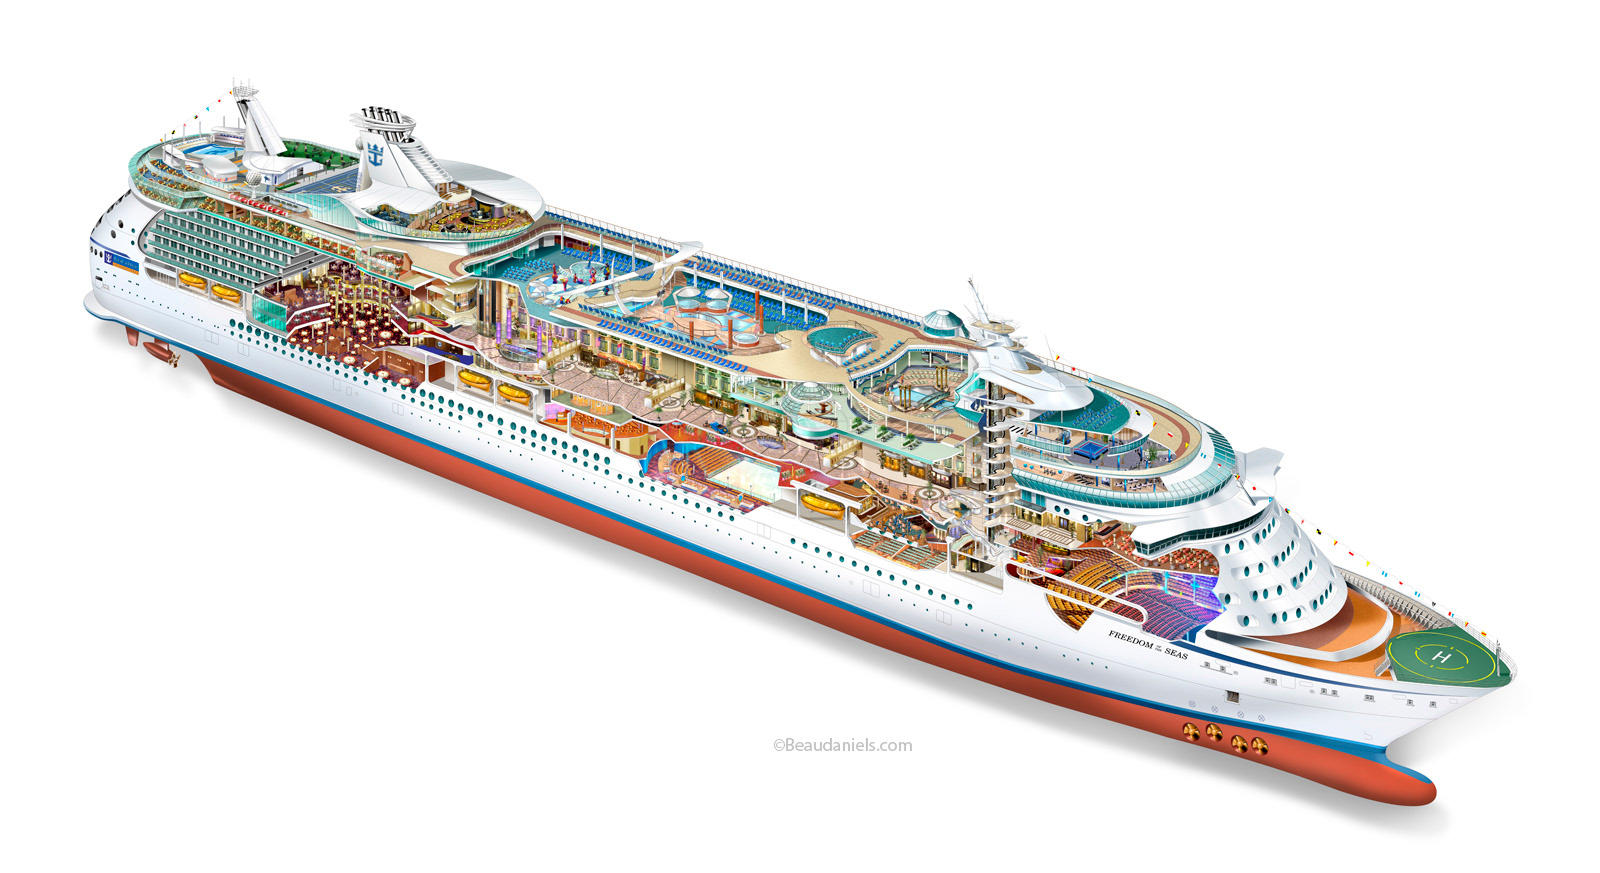 Royal Caribbean Cruise Line Freedom Of The Seas Cutaway Rendered In Adobe Photoshop